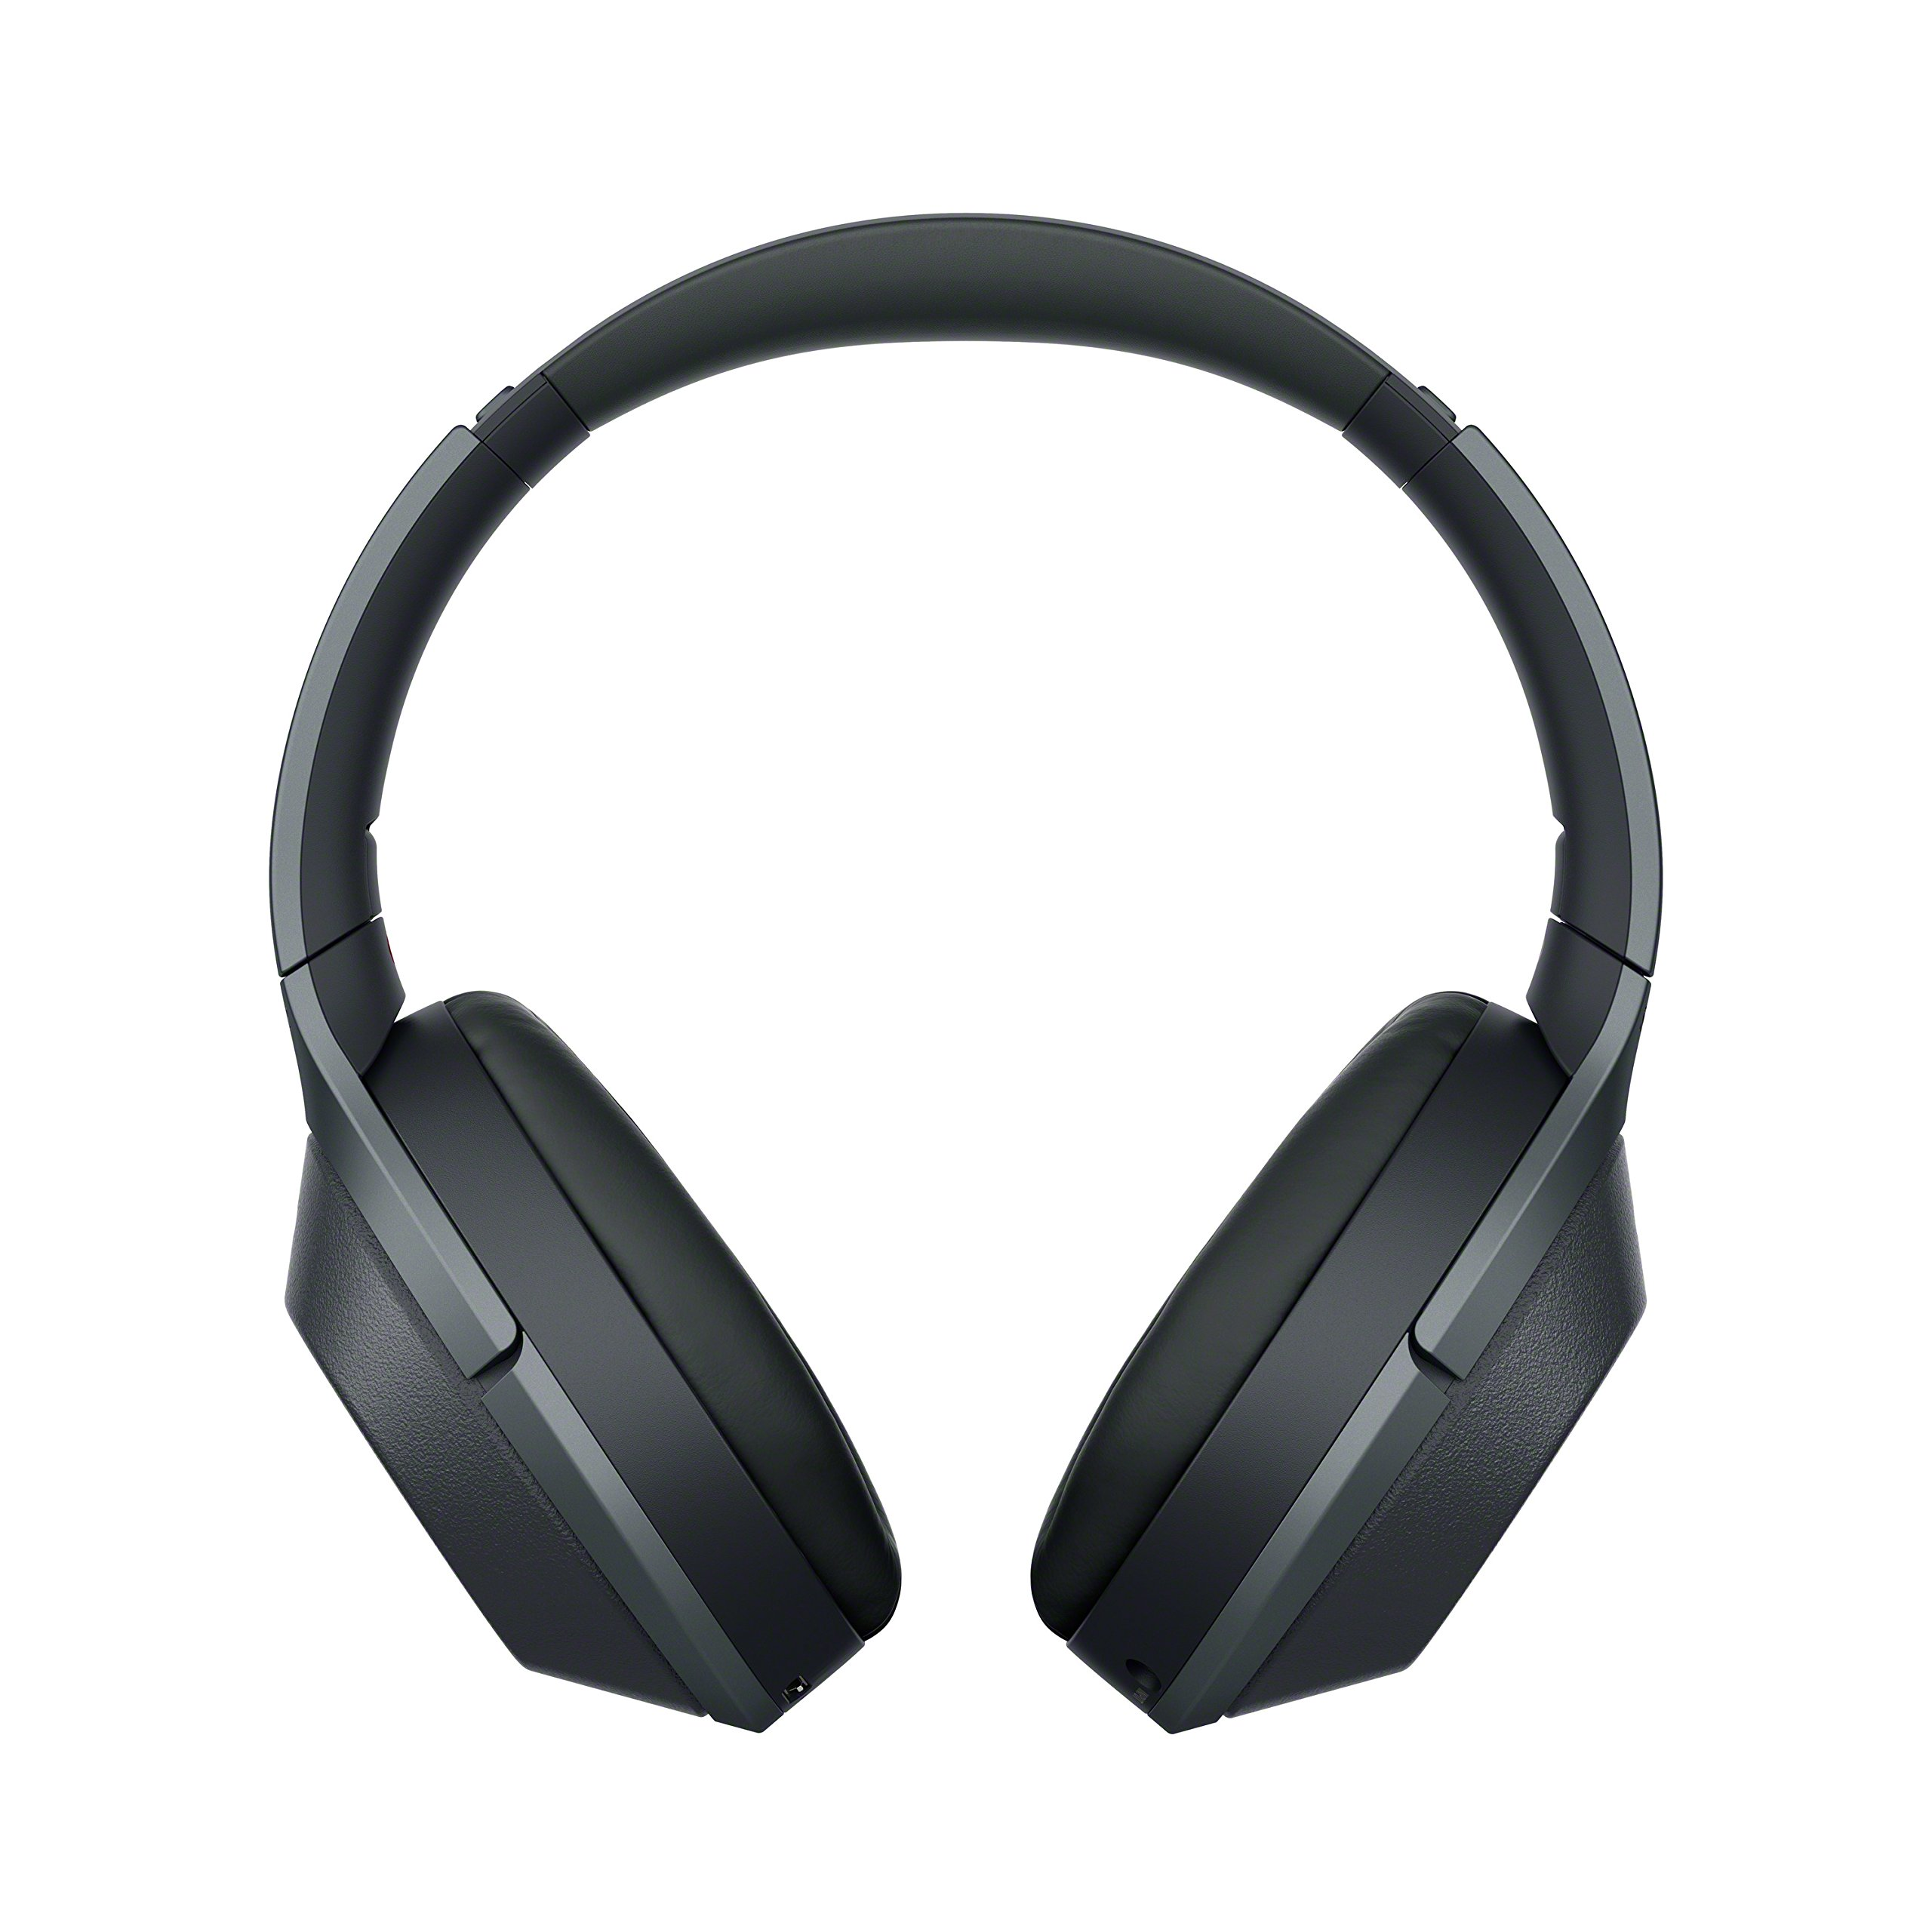 Sony Noise Cancelling Headphones WH1000XM2: Over Ear Wireless Bluetooth Headphones with Case - Black by Sony (Image #2)